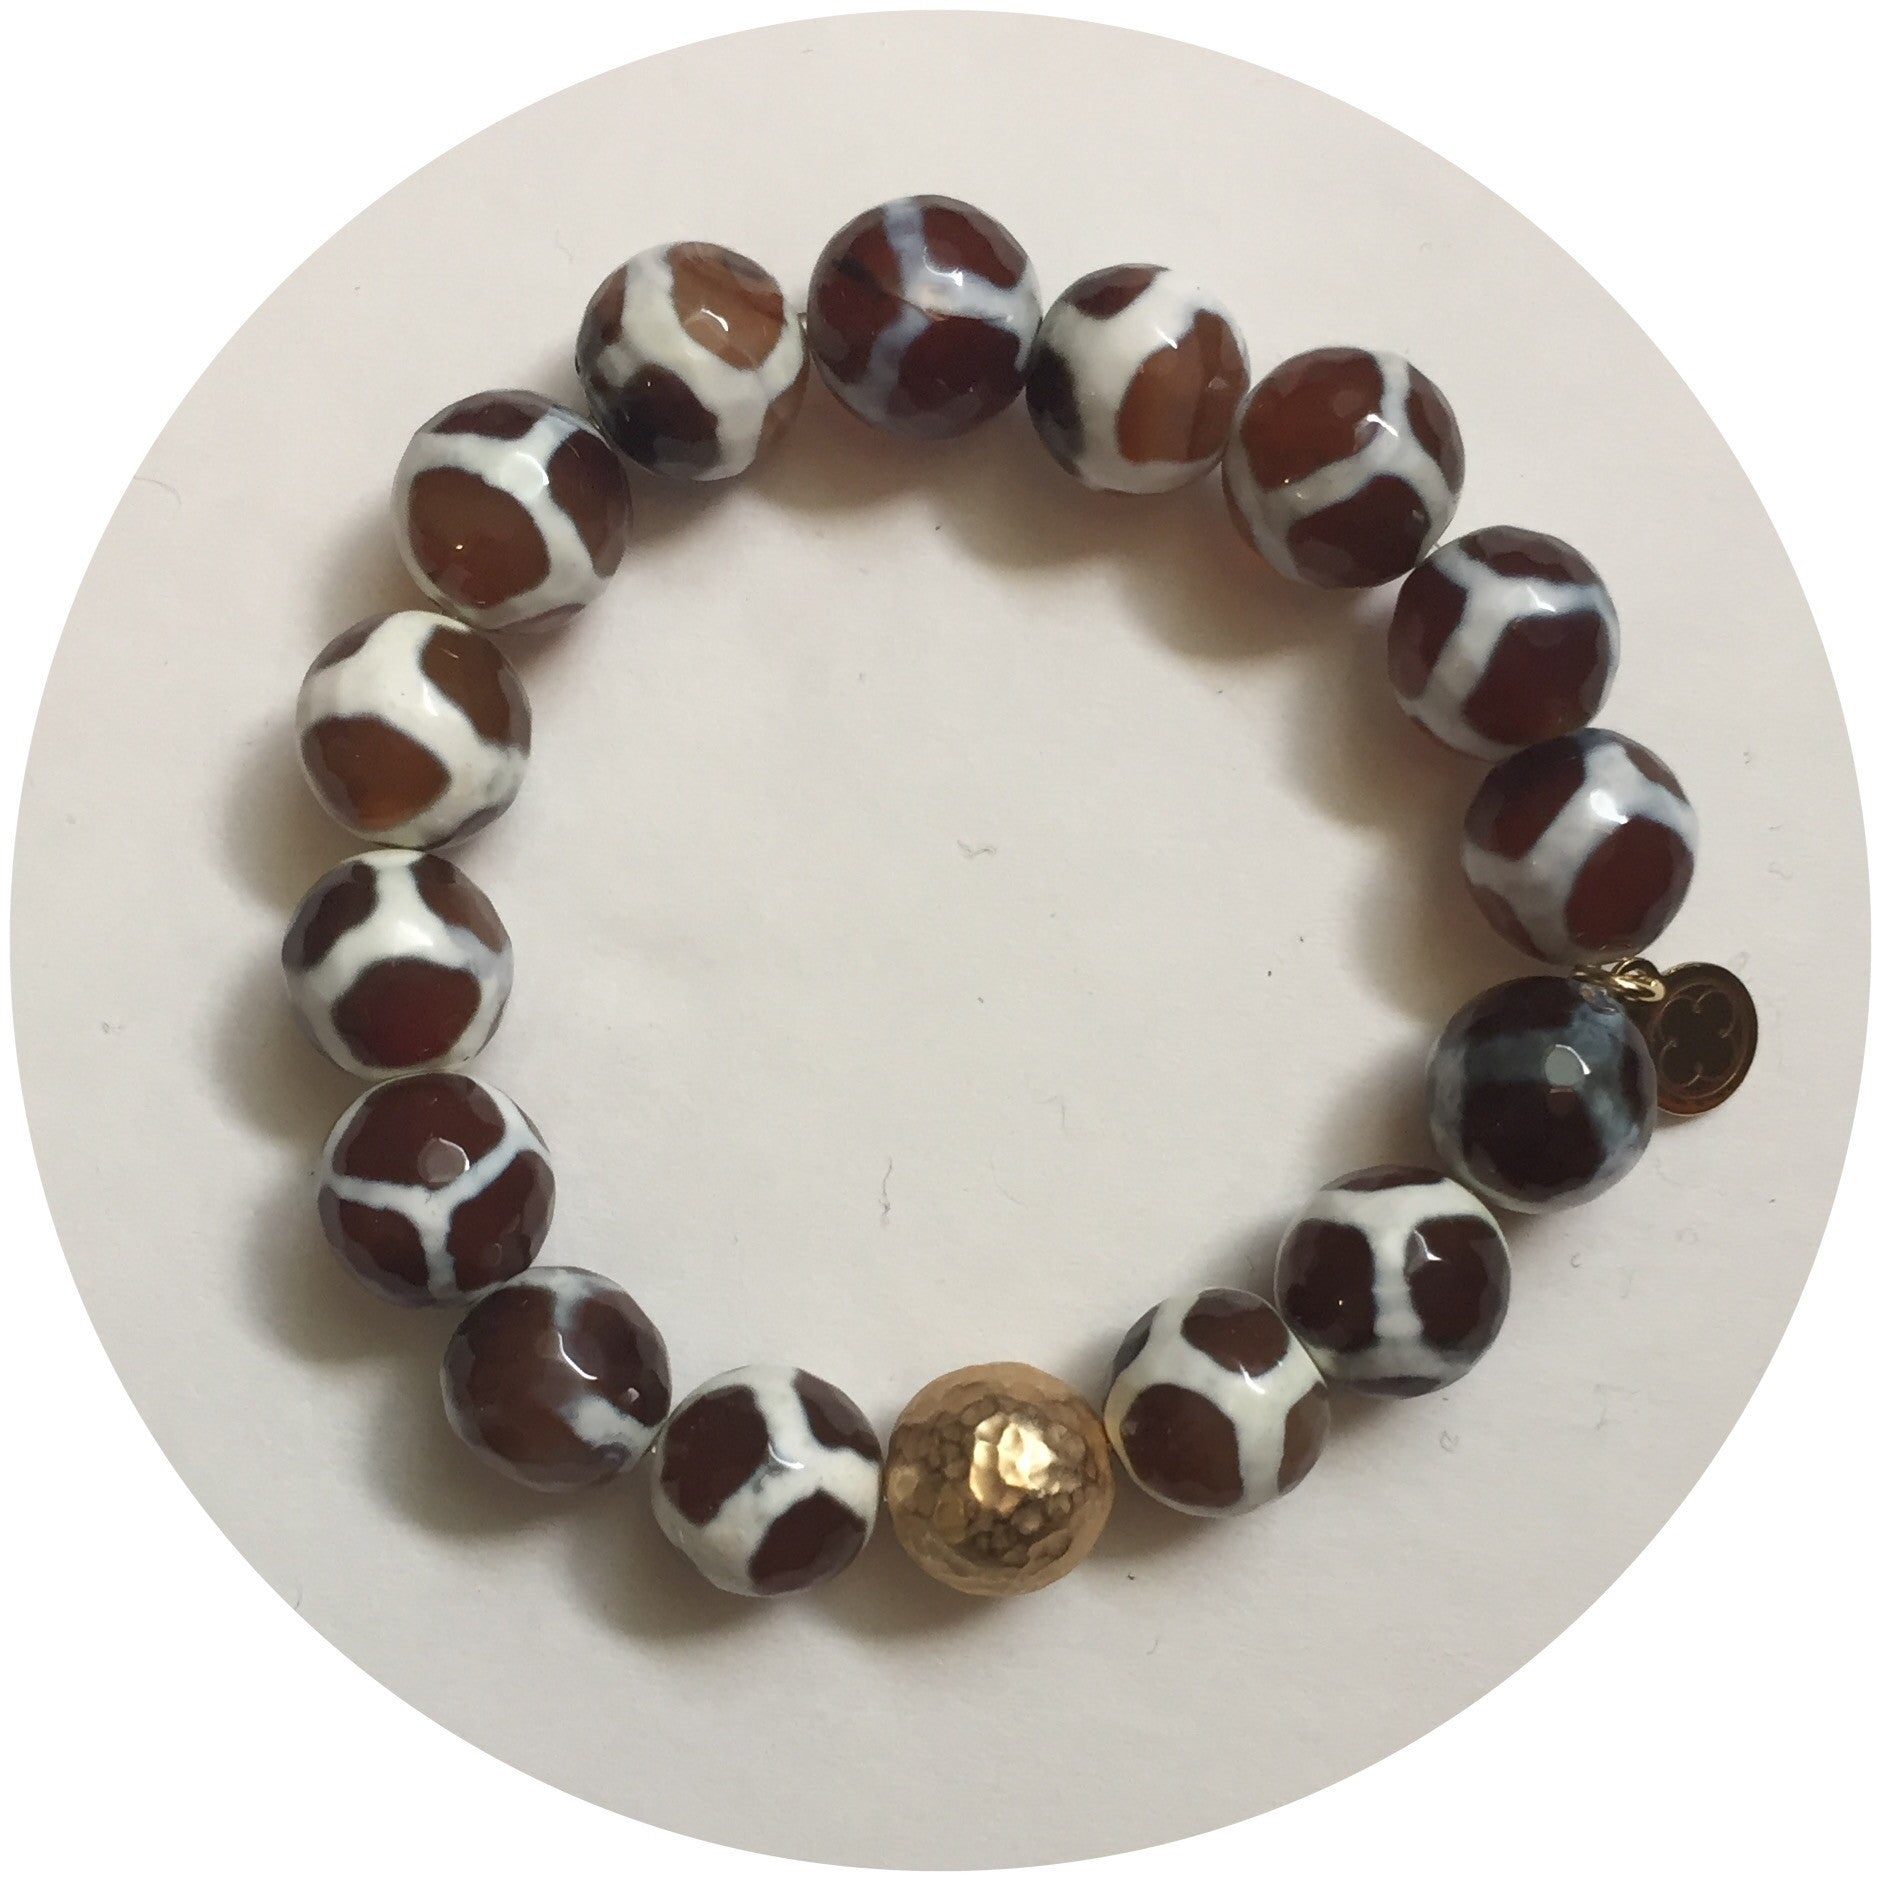 Tibetan Brown Giraffe Agate with Hammered Gold Accent